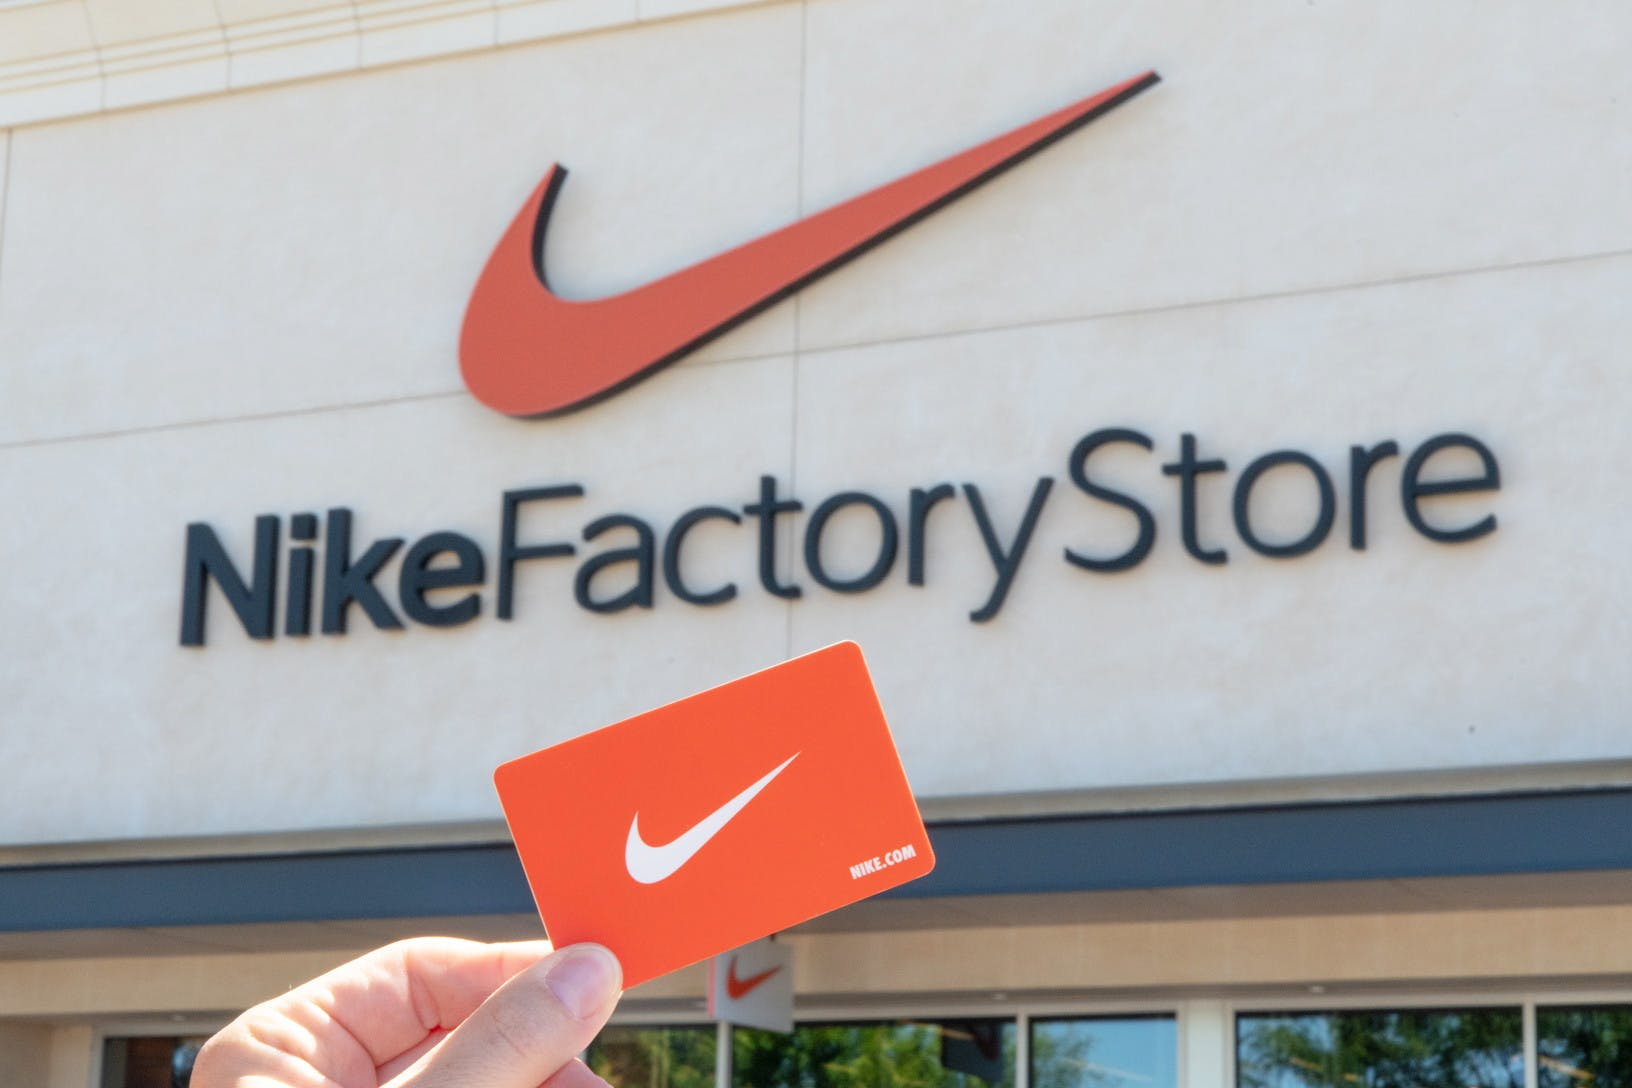 cómo utilizar Farmacología adecuado  33 Insanely Smart Nike Factory Store Hacks - The Krazy Coupon Lady